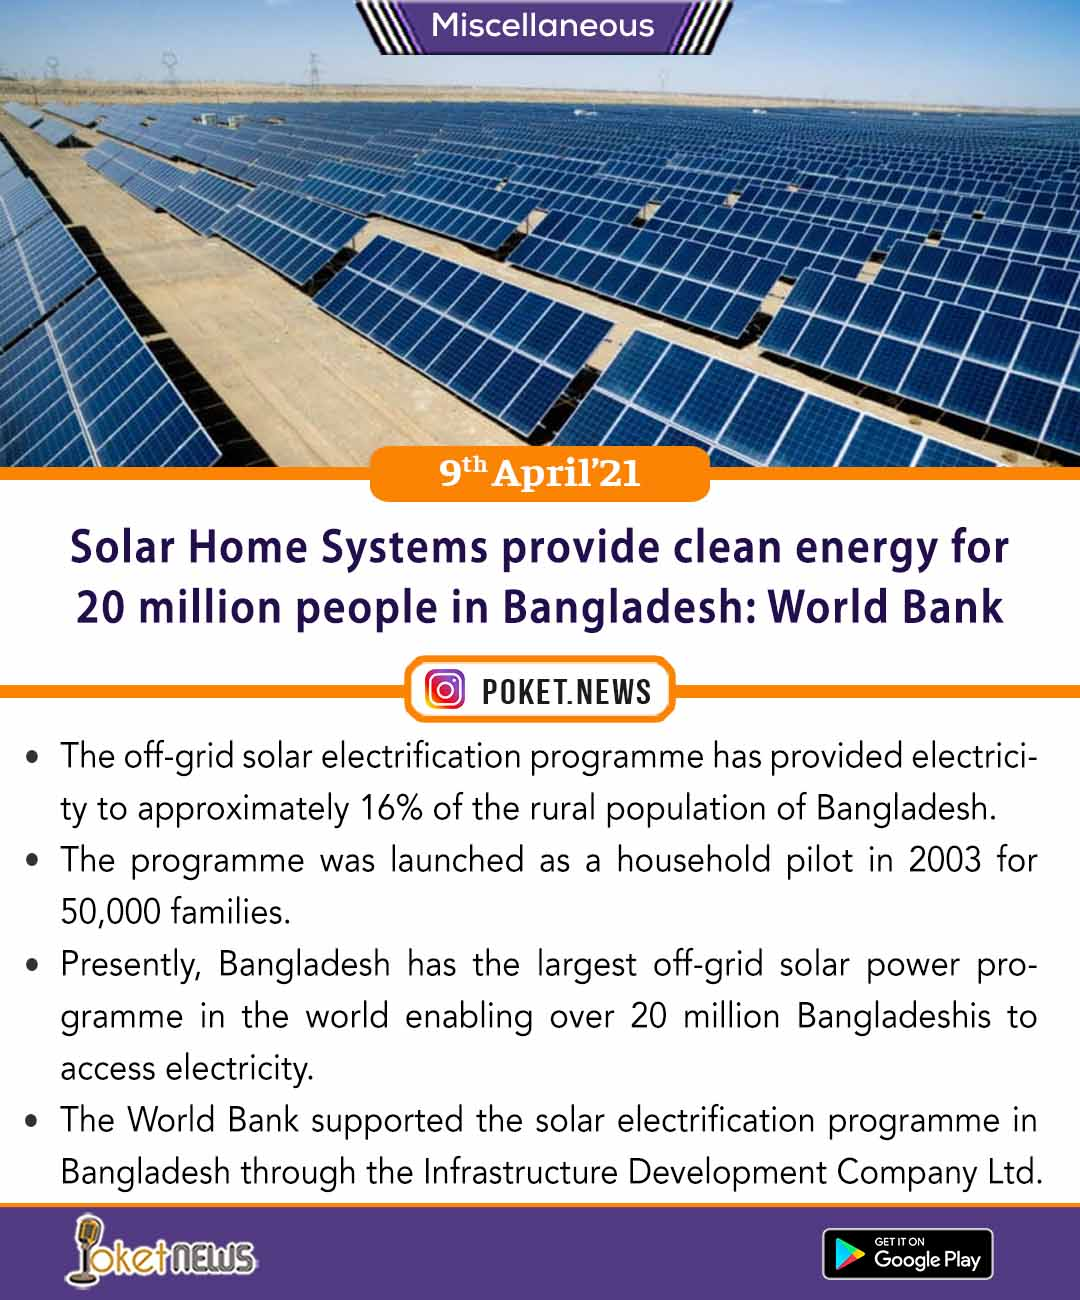 Solar Home Systems provide clean energy for 20 million people in Bangladesh: World Bank